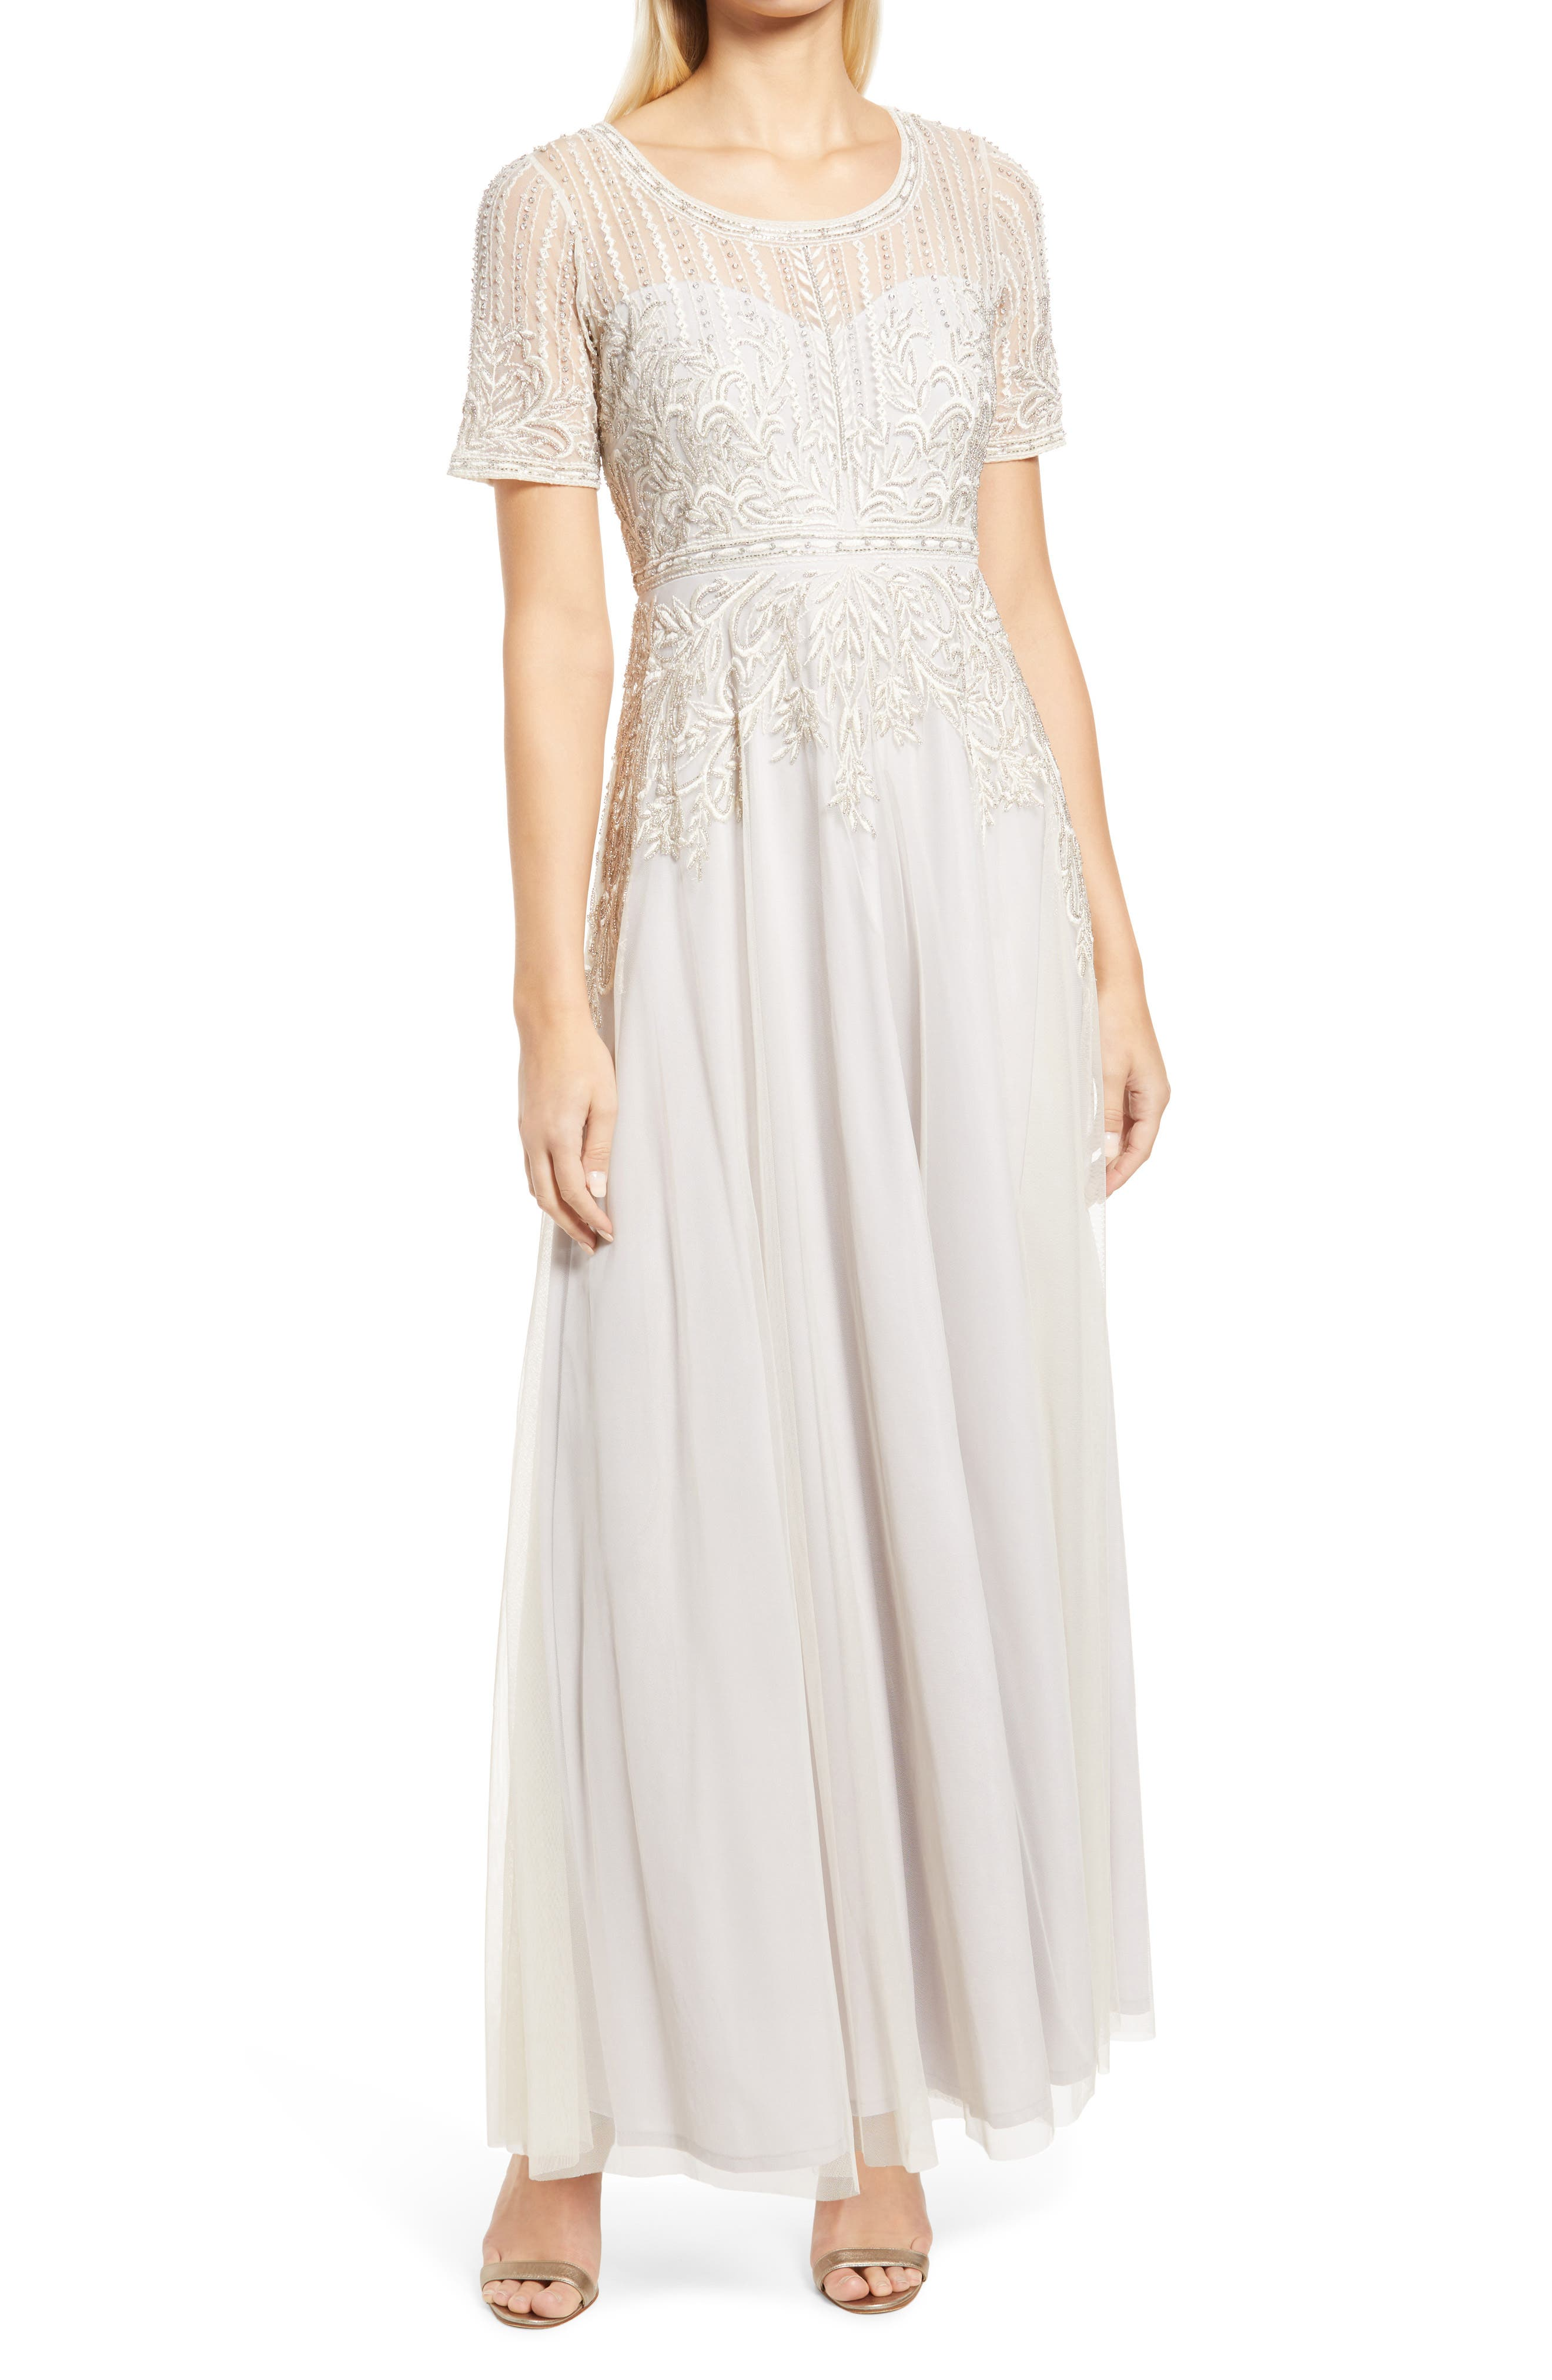 Great Gatsby Dress – Great Gatsby Dresses for Sale Womens Pisarro Nights Embroidered Beaded Gown Size 8 - Ivory $278.00 AT vintagedancer.com